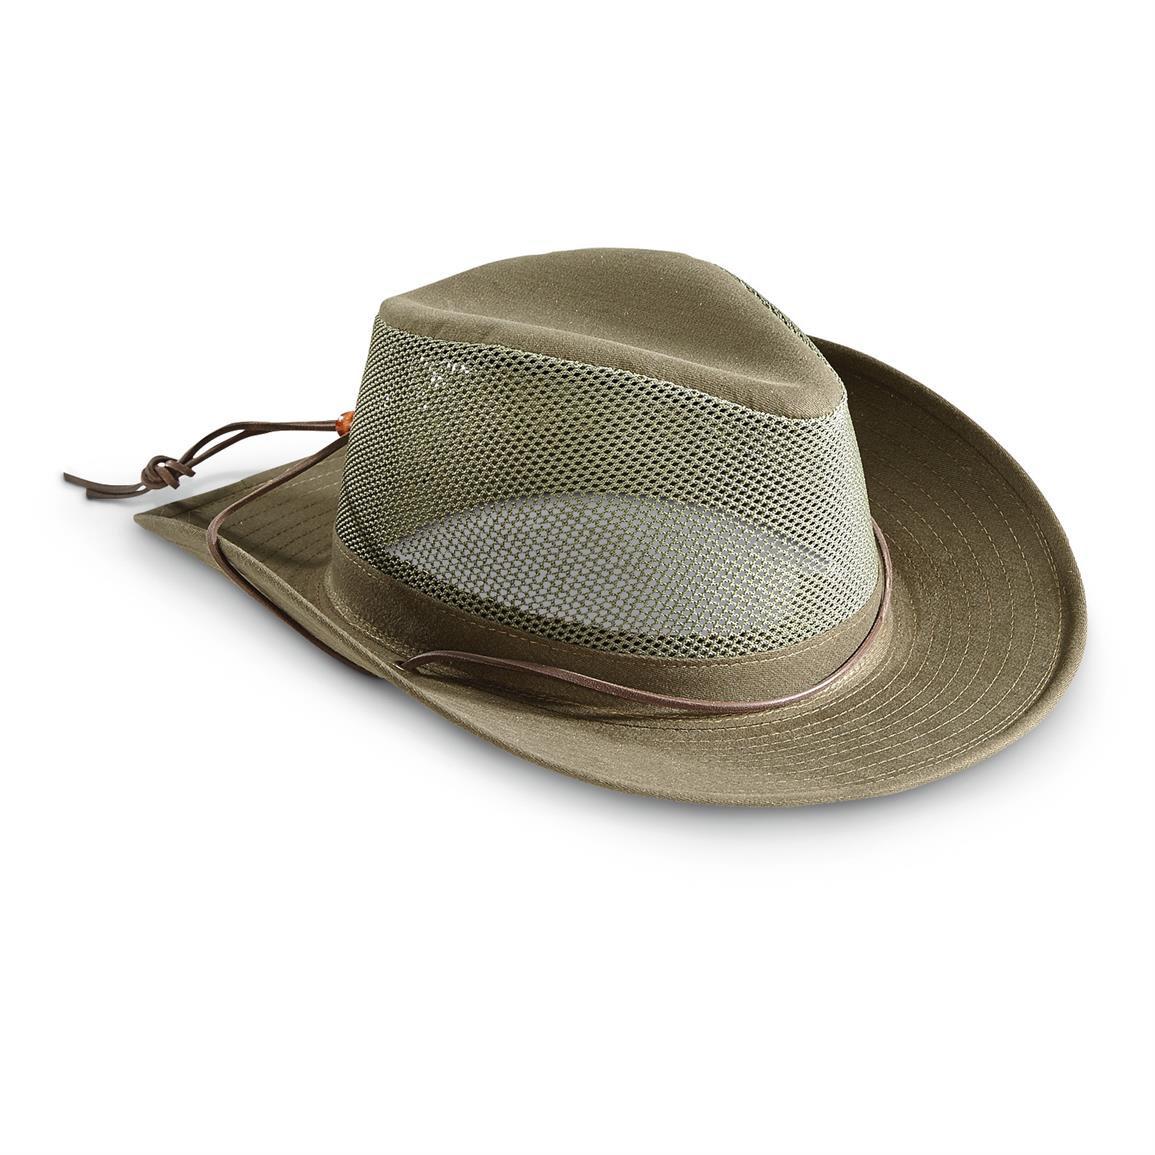 Henschel Breezer Hat with CoolMax Band, Olive